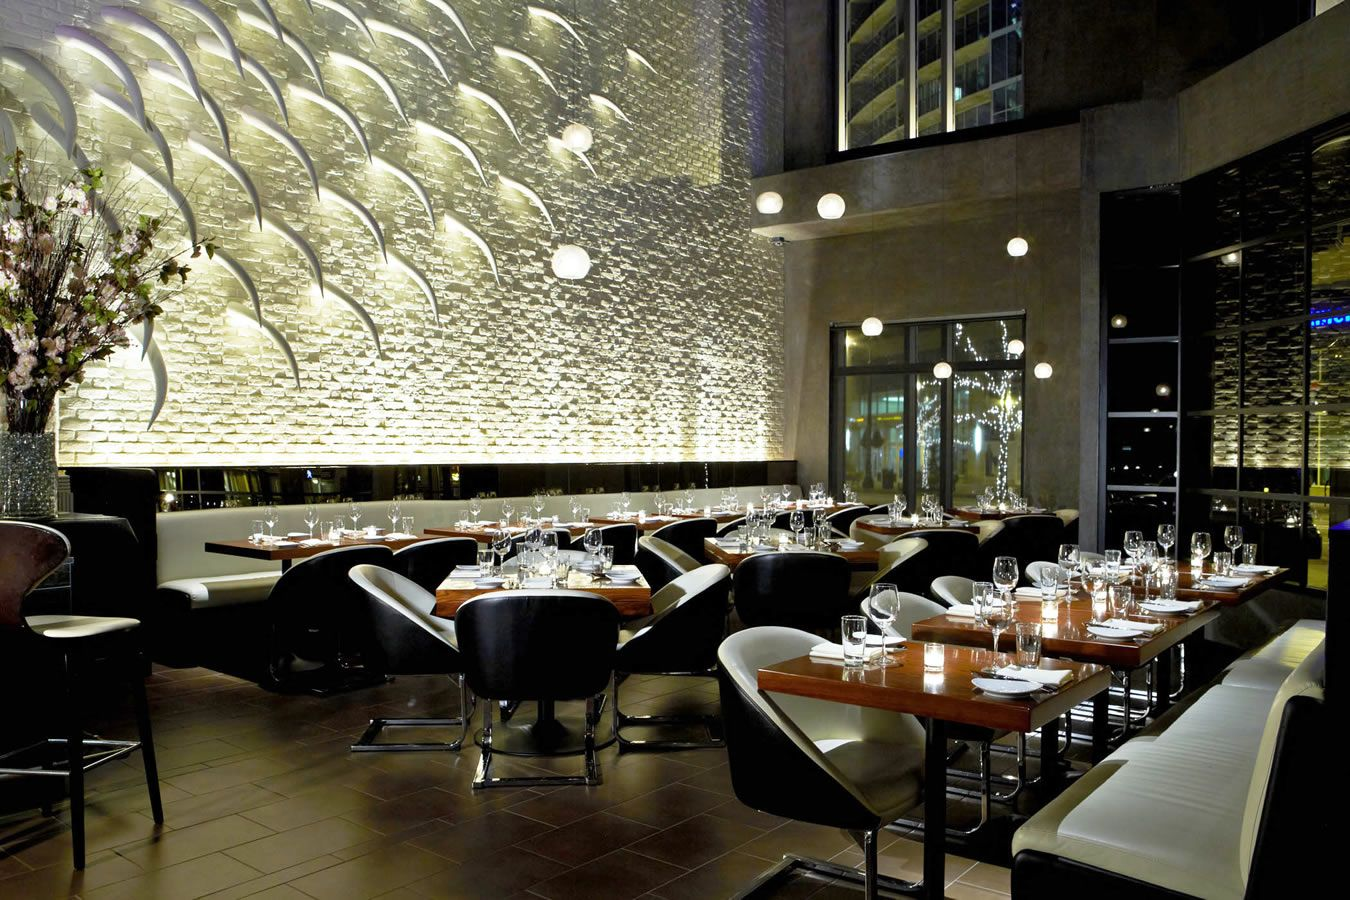 Dinner  Stk Atlanta  The One Group  Dined Pinterest  Supper Simple Stk Private Dining Room Design Inspiration